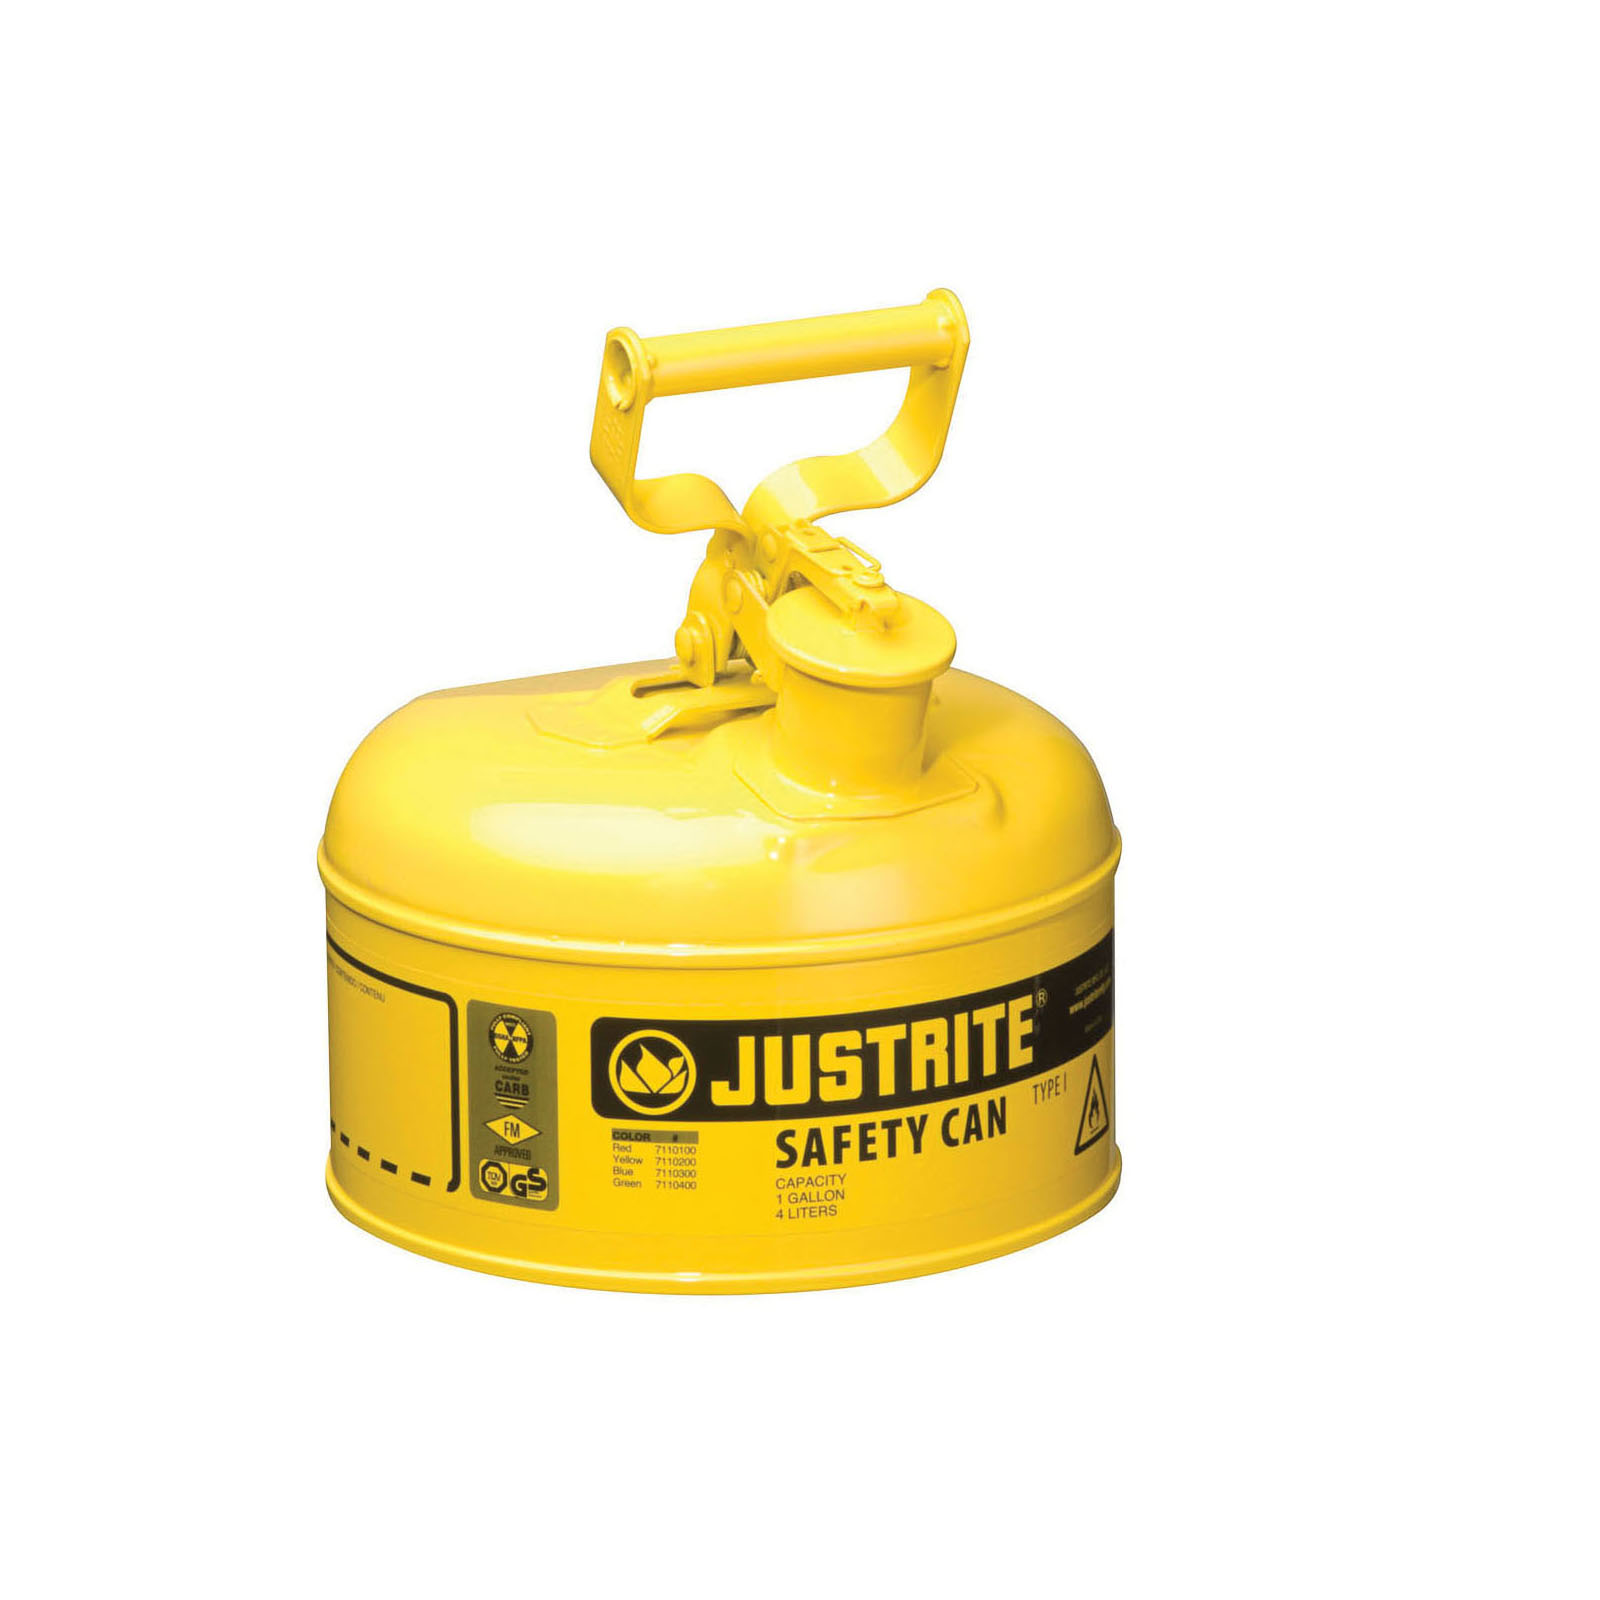 Justrite® 7110200 Type I Safety Can With Swinging Handle and Stainless Steel Flame Arrester, 1 gal Capacity, 9-1/2 in Dia x 11 in H, Steel, Yellow